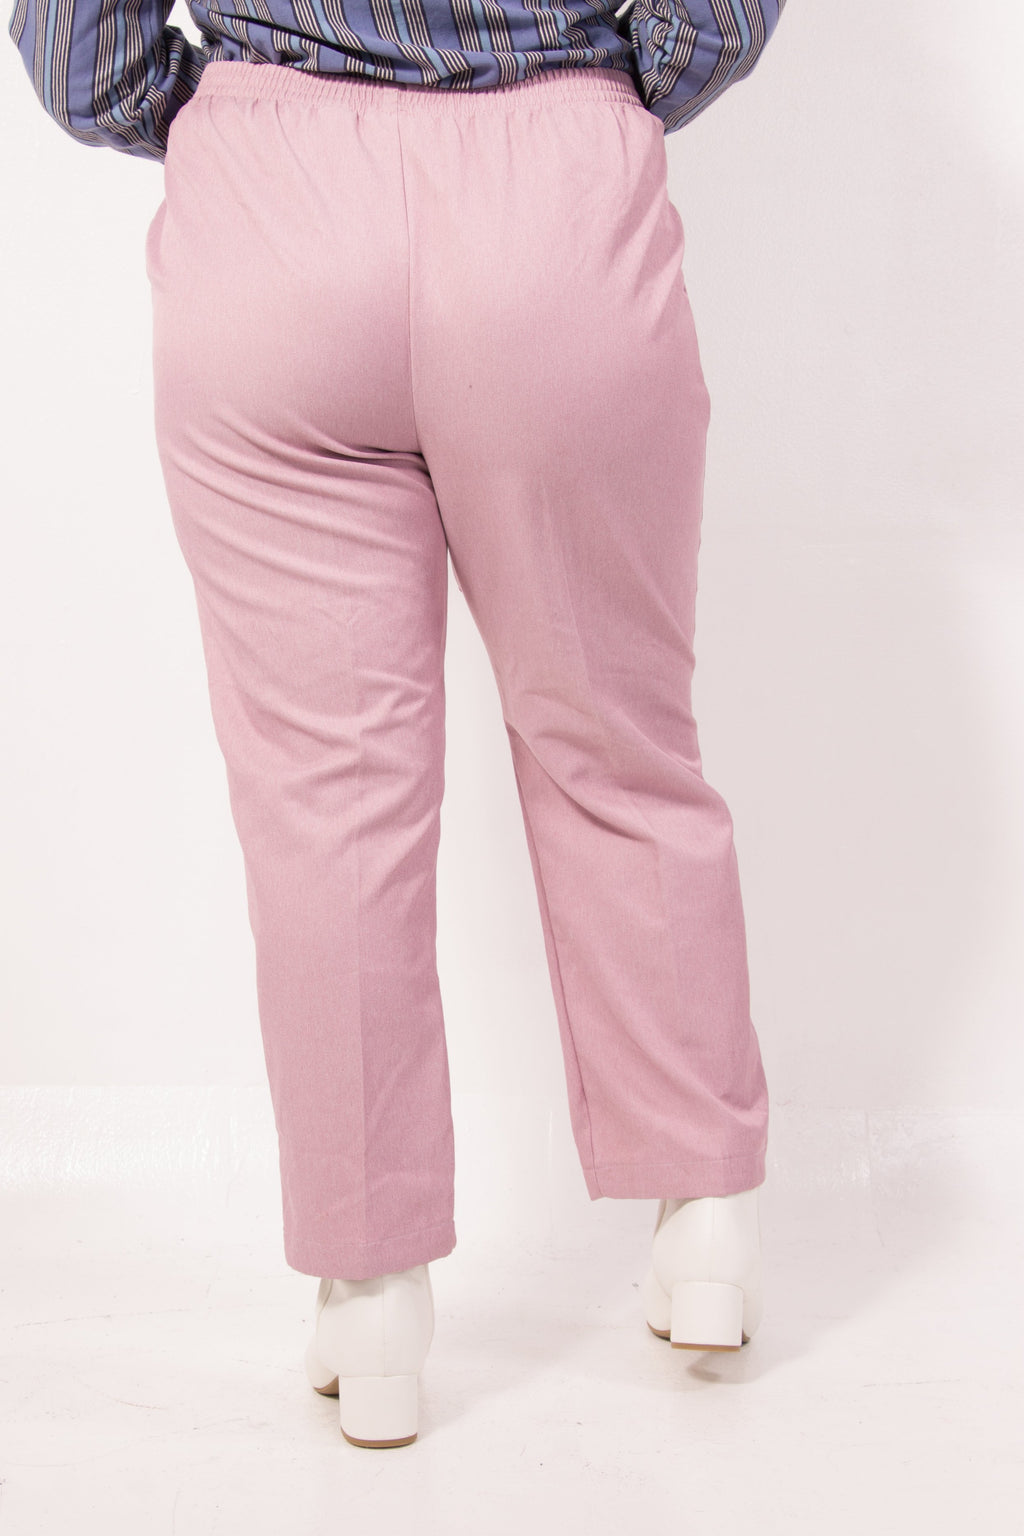 Vintage - sweet pink trousers